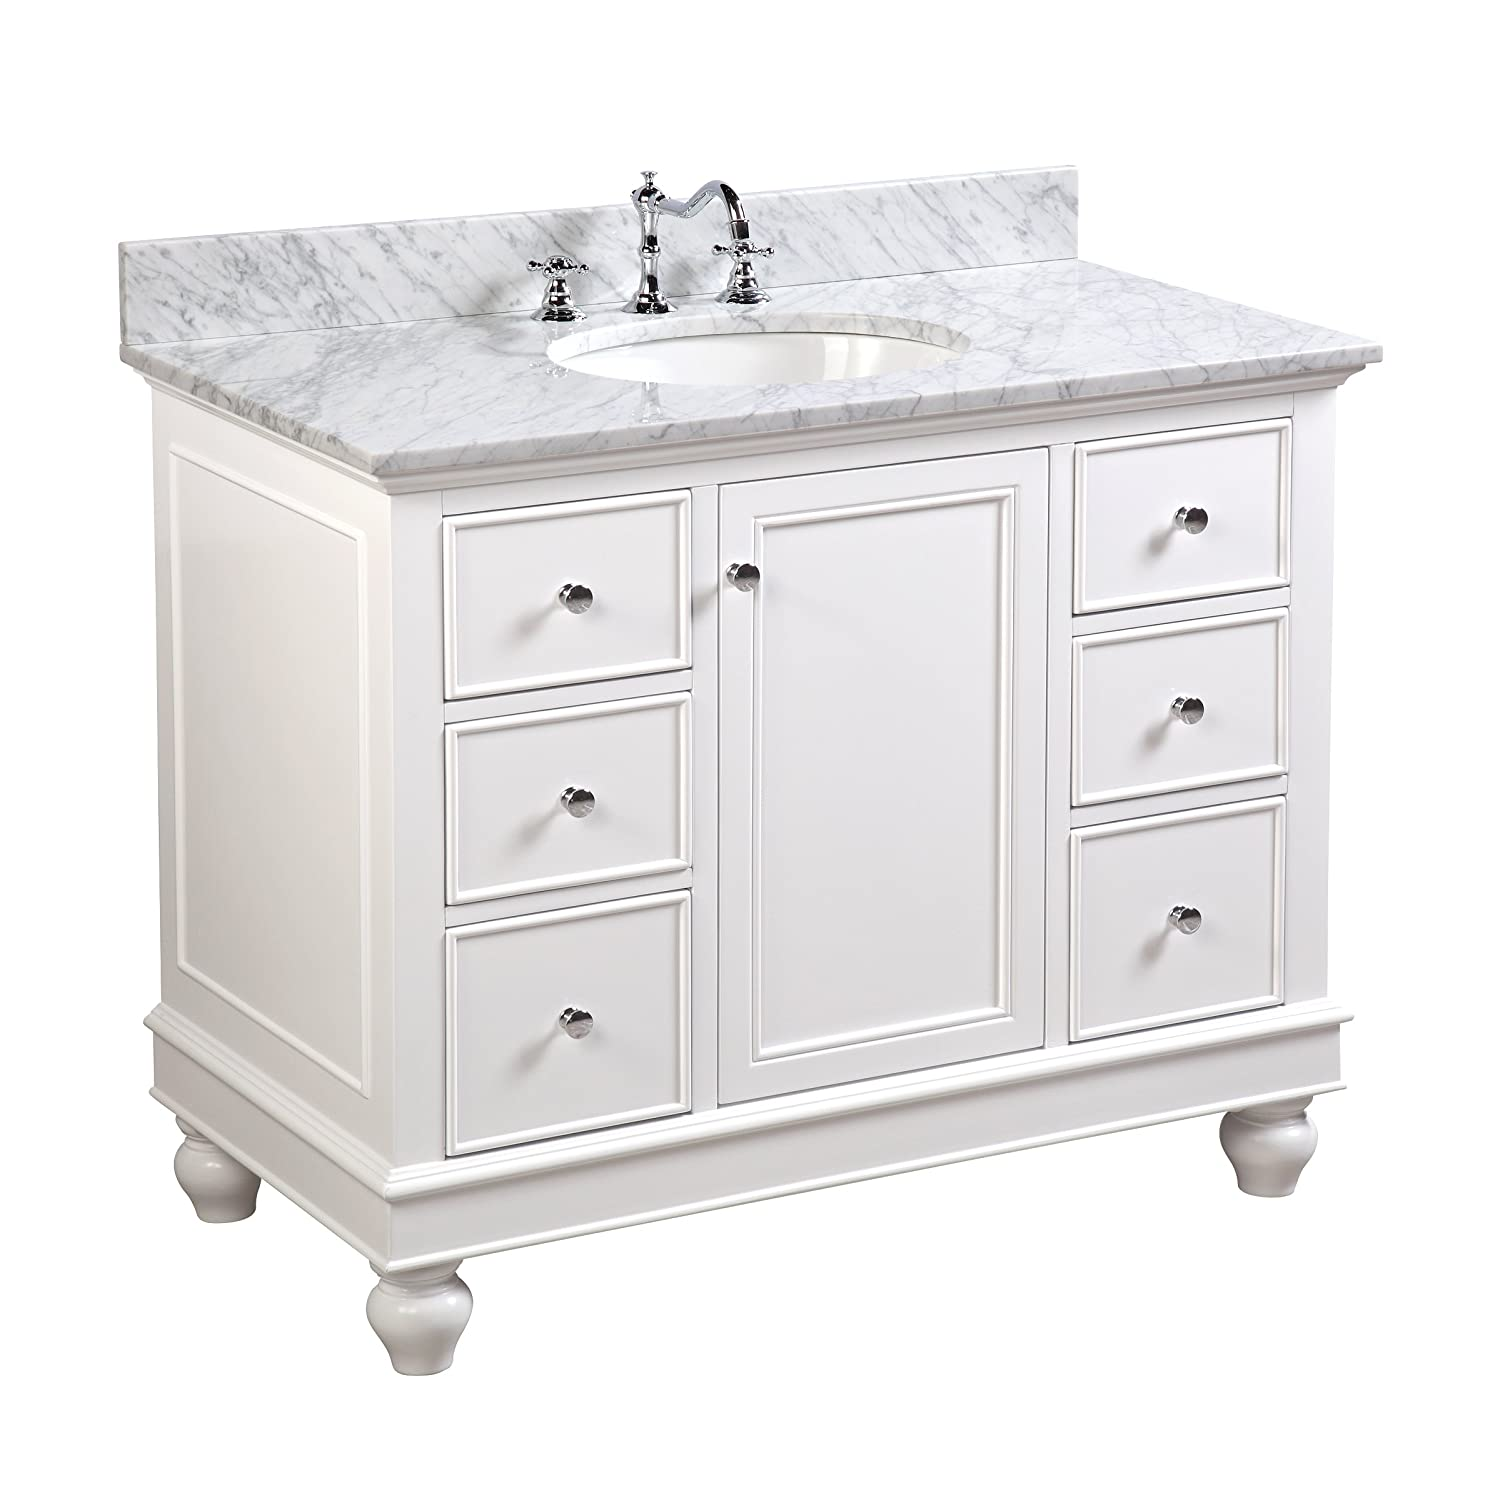 Bella 42-inch Bathroom Vanity Carrara White Includes a White Cabinet with Soft Close Drawers, Authentic Italian Carrara Marble Countertop, and White Ceramic Sink